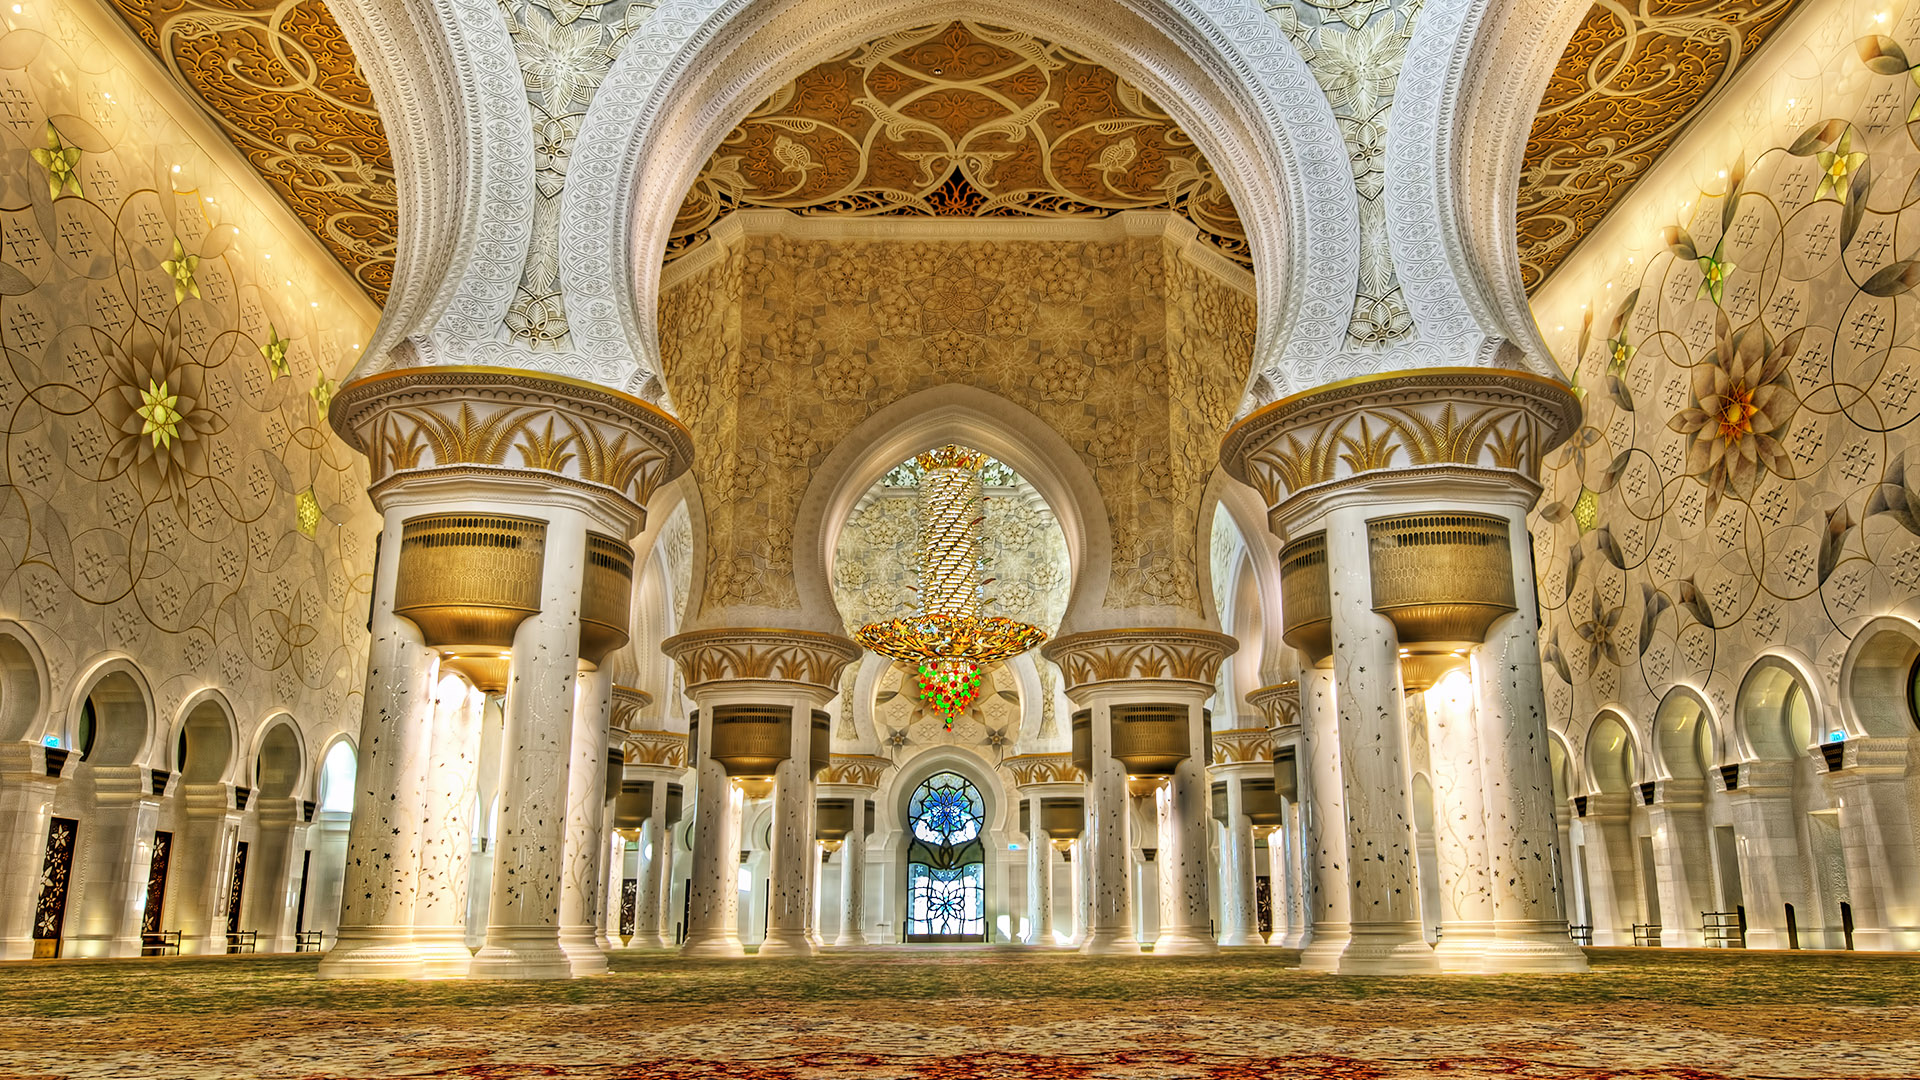 Sheikh Zayed Grand Mosque and Emirates Palace Hotel Half-Day Tour from Dubai